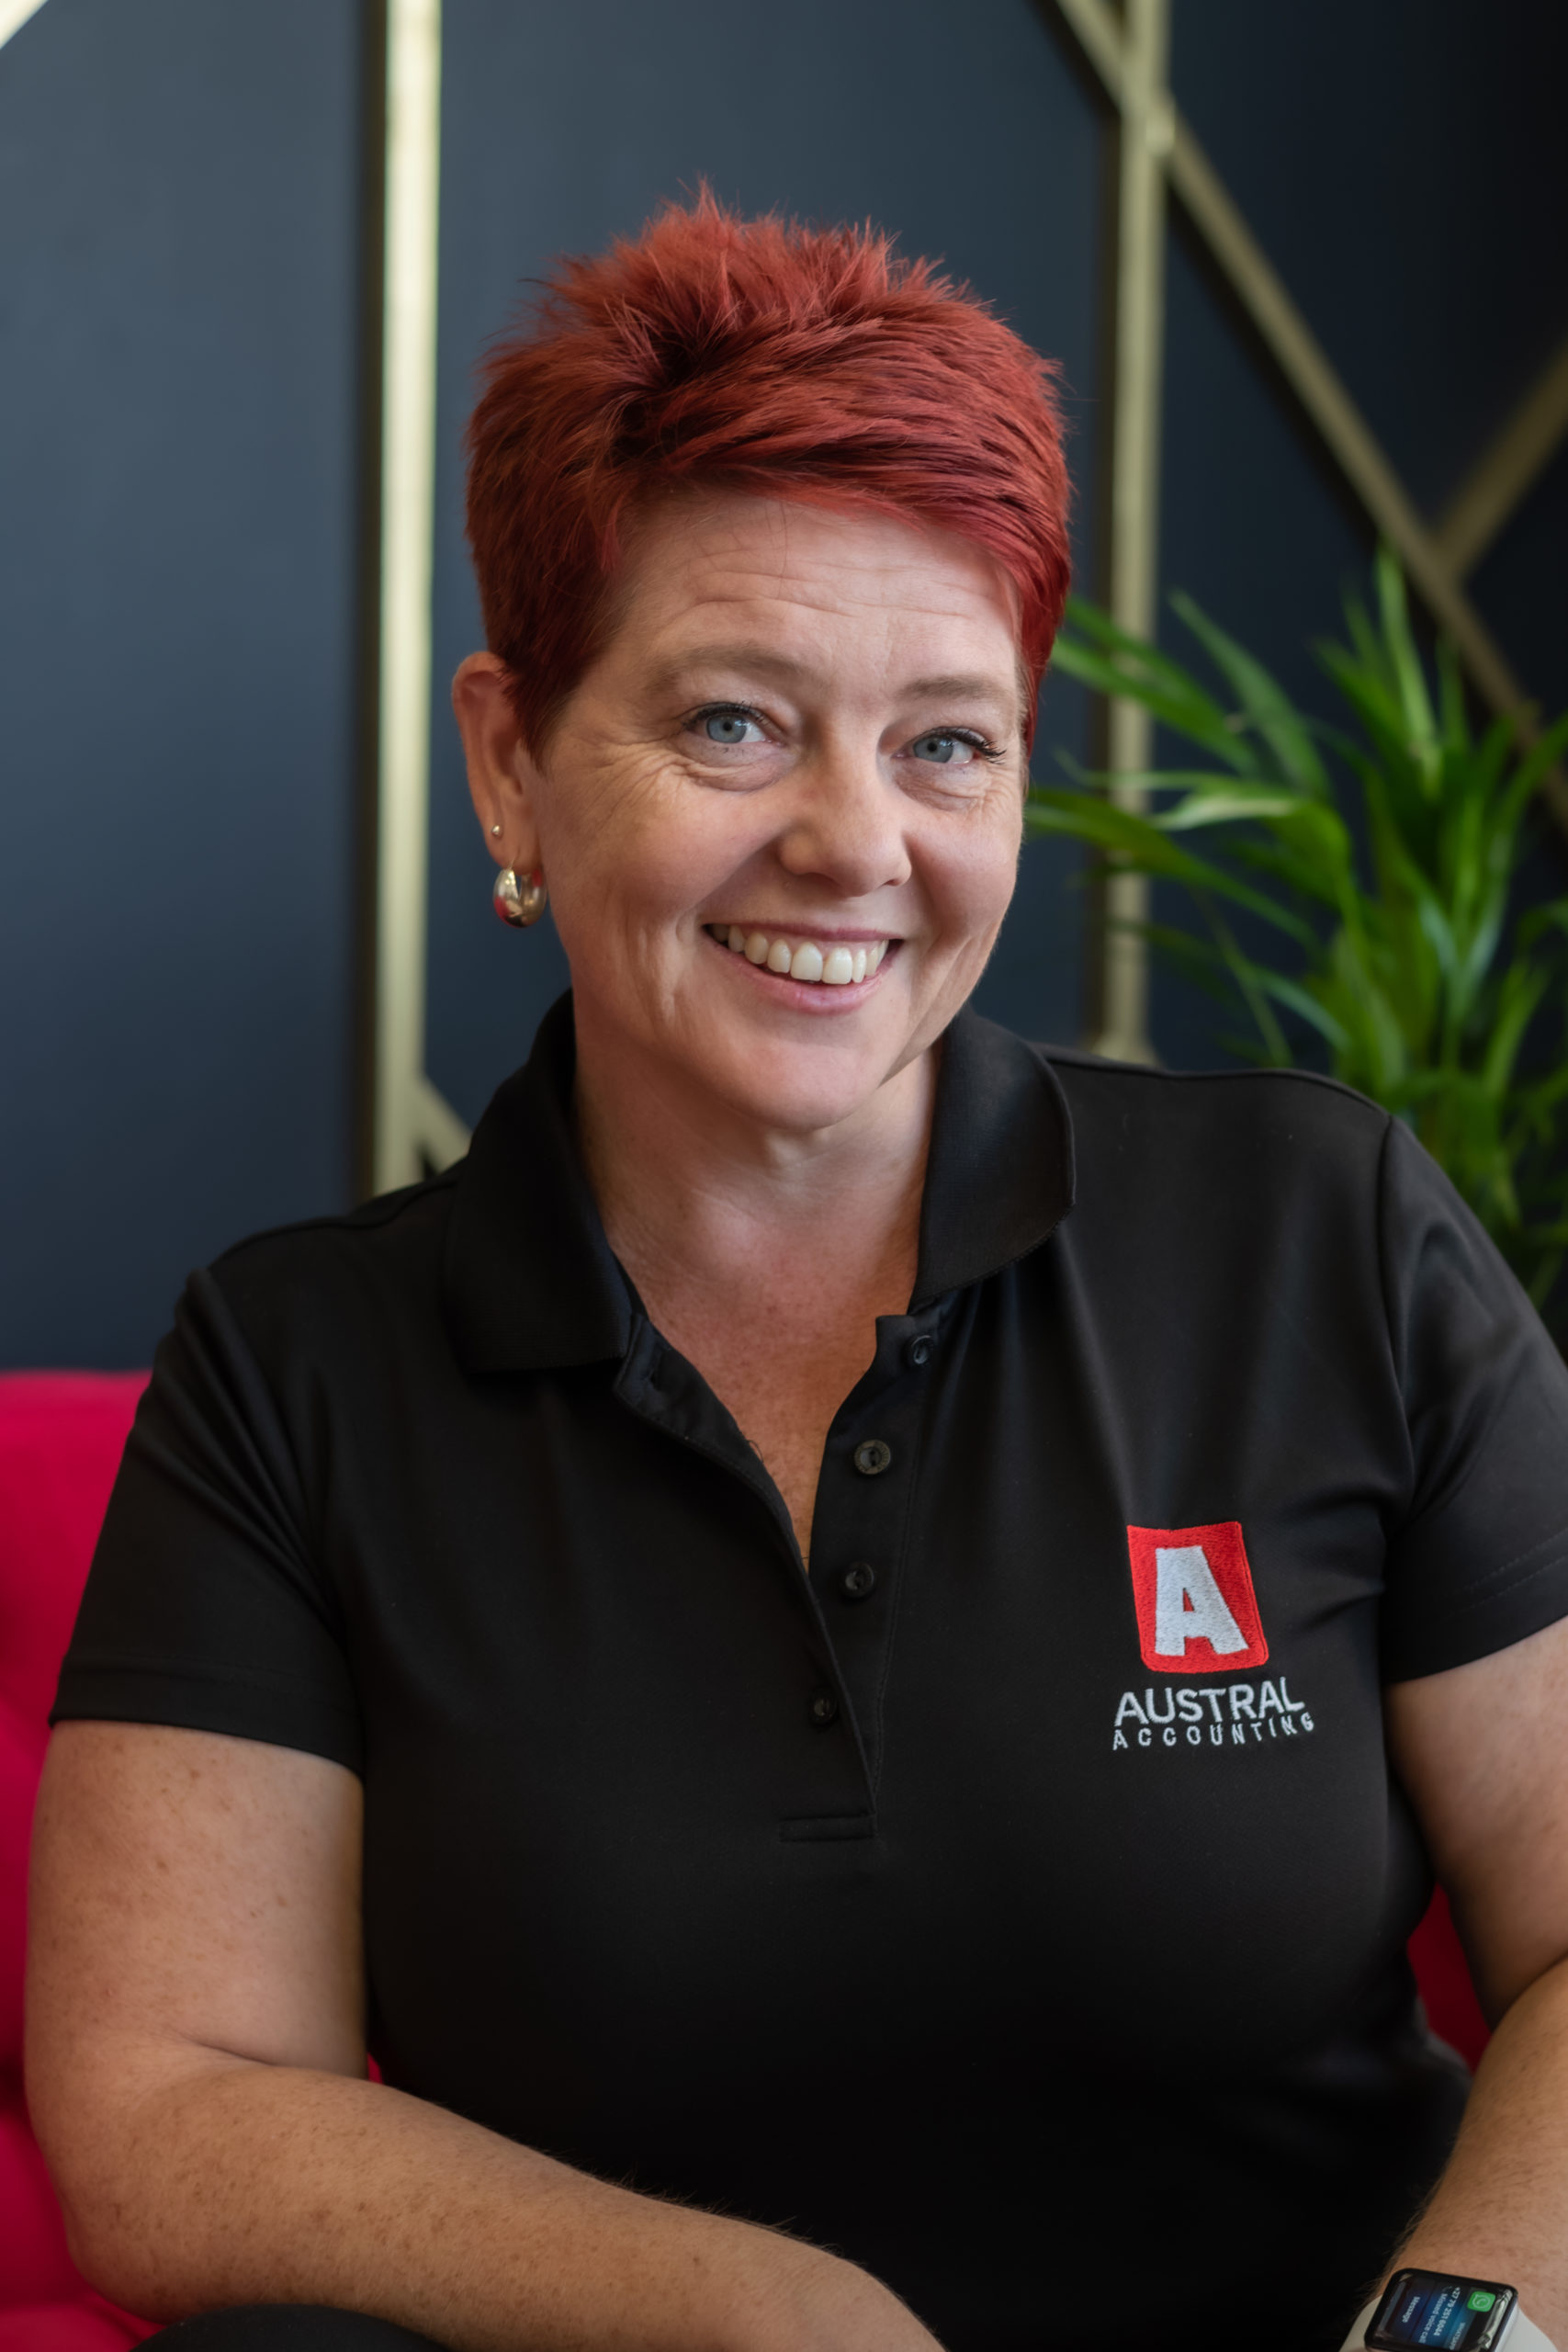 lynnete owner of austral accounting